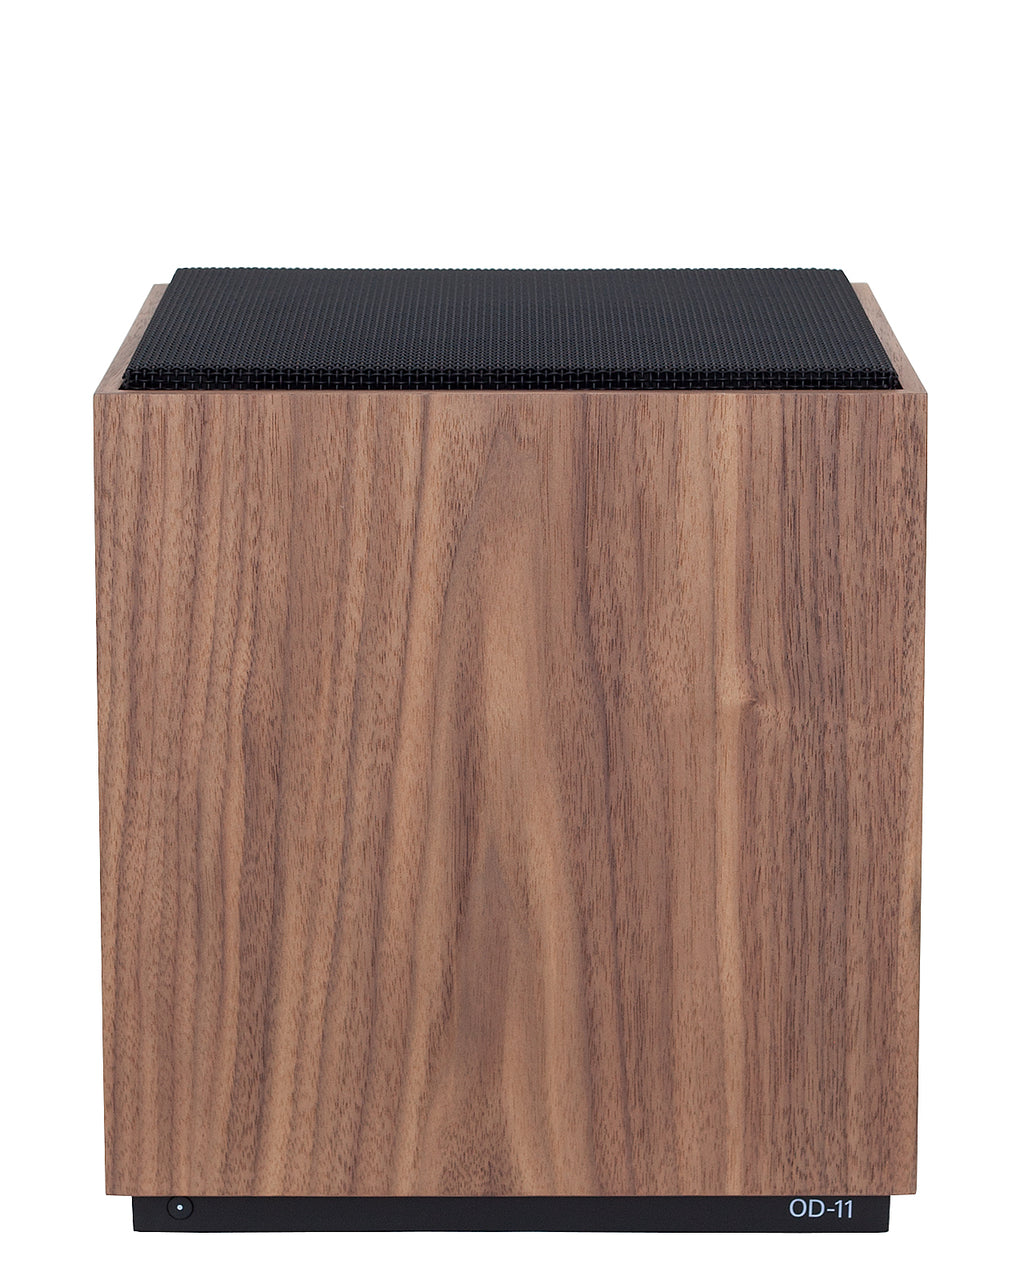 Teenage Engineering OD-11 Speaker, Walnut